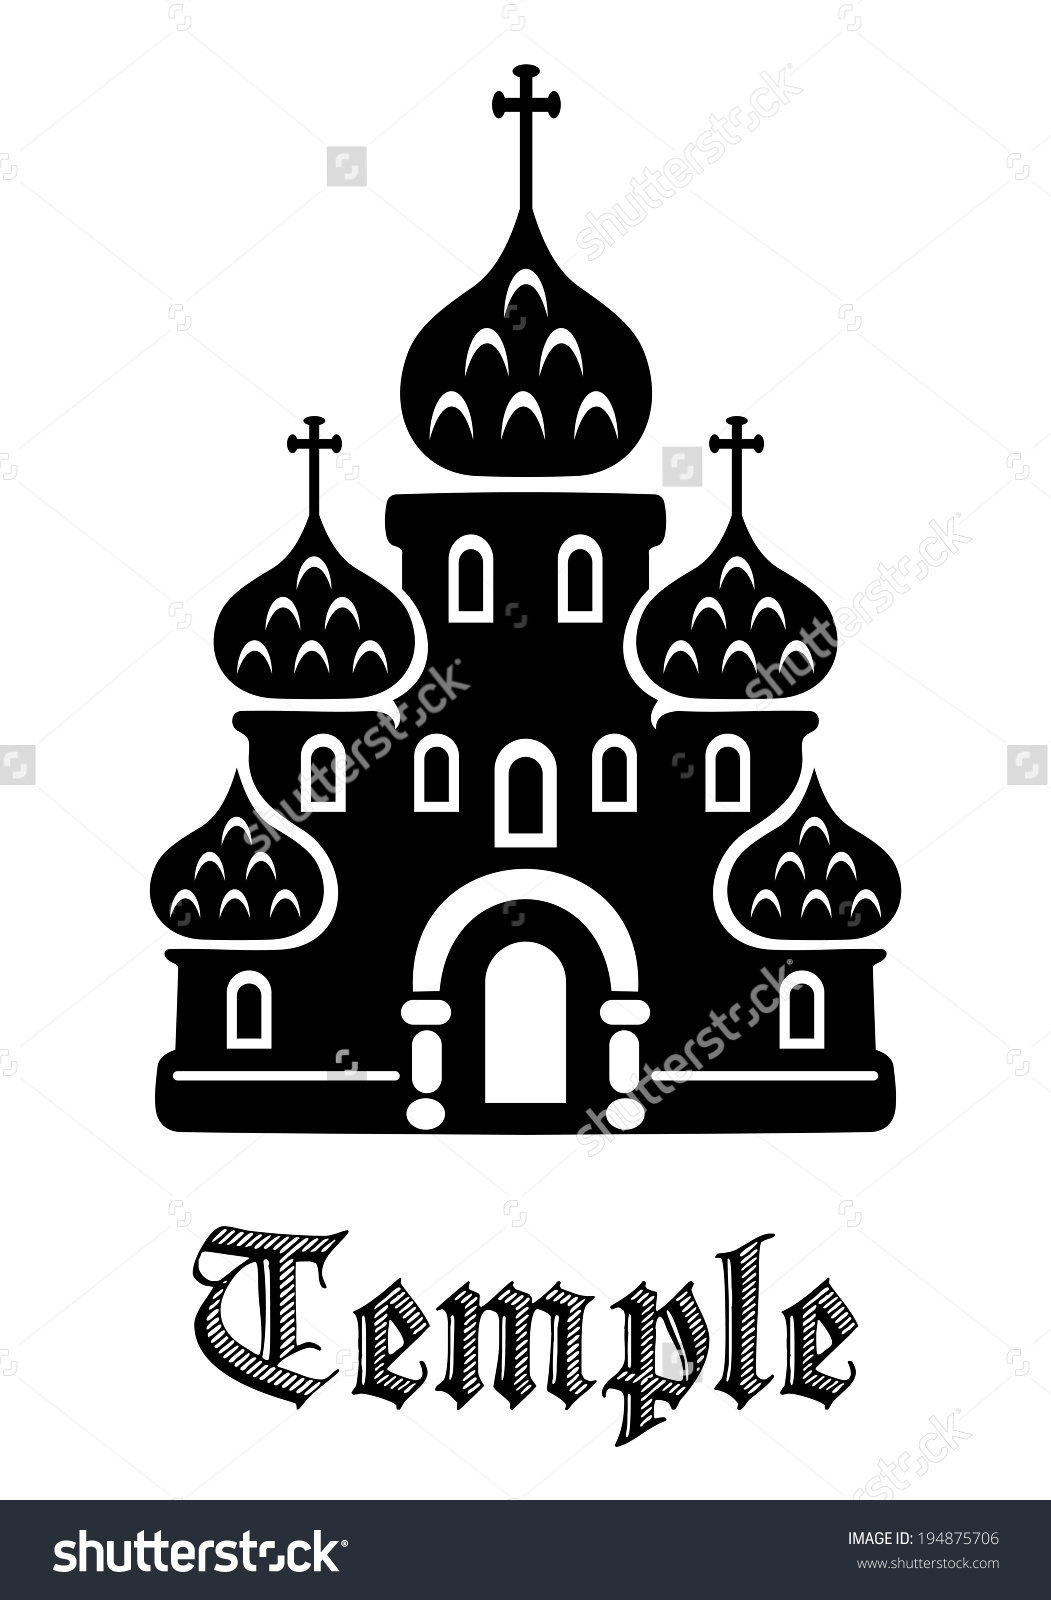 Black And White Architectural Icon Of A Temple With Tiered Ornate.